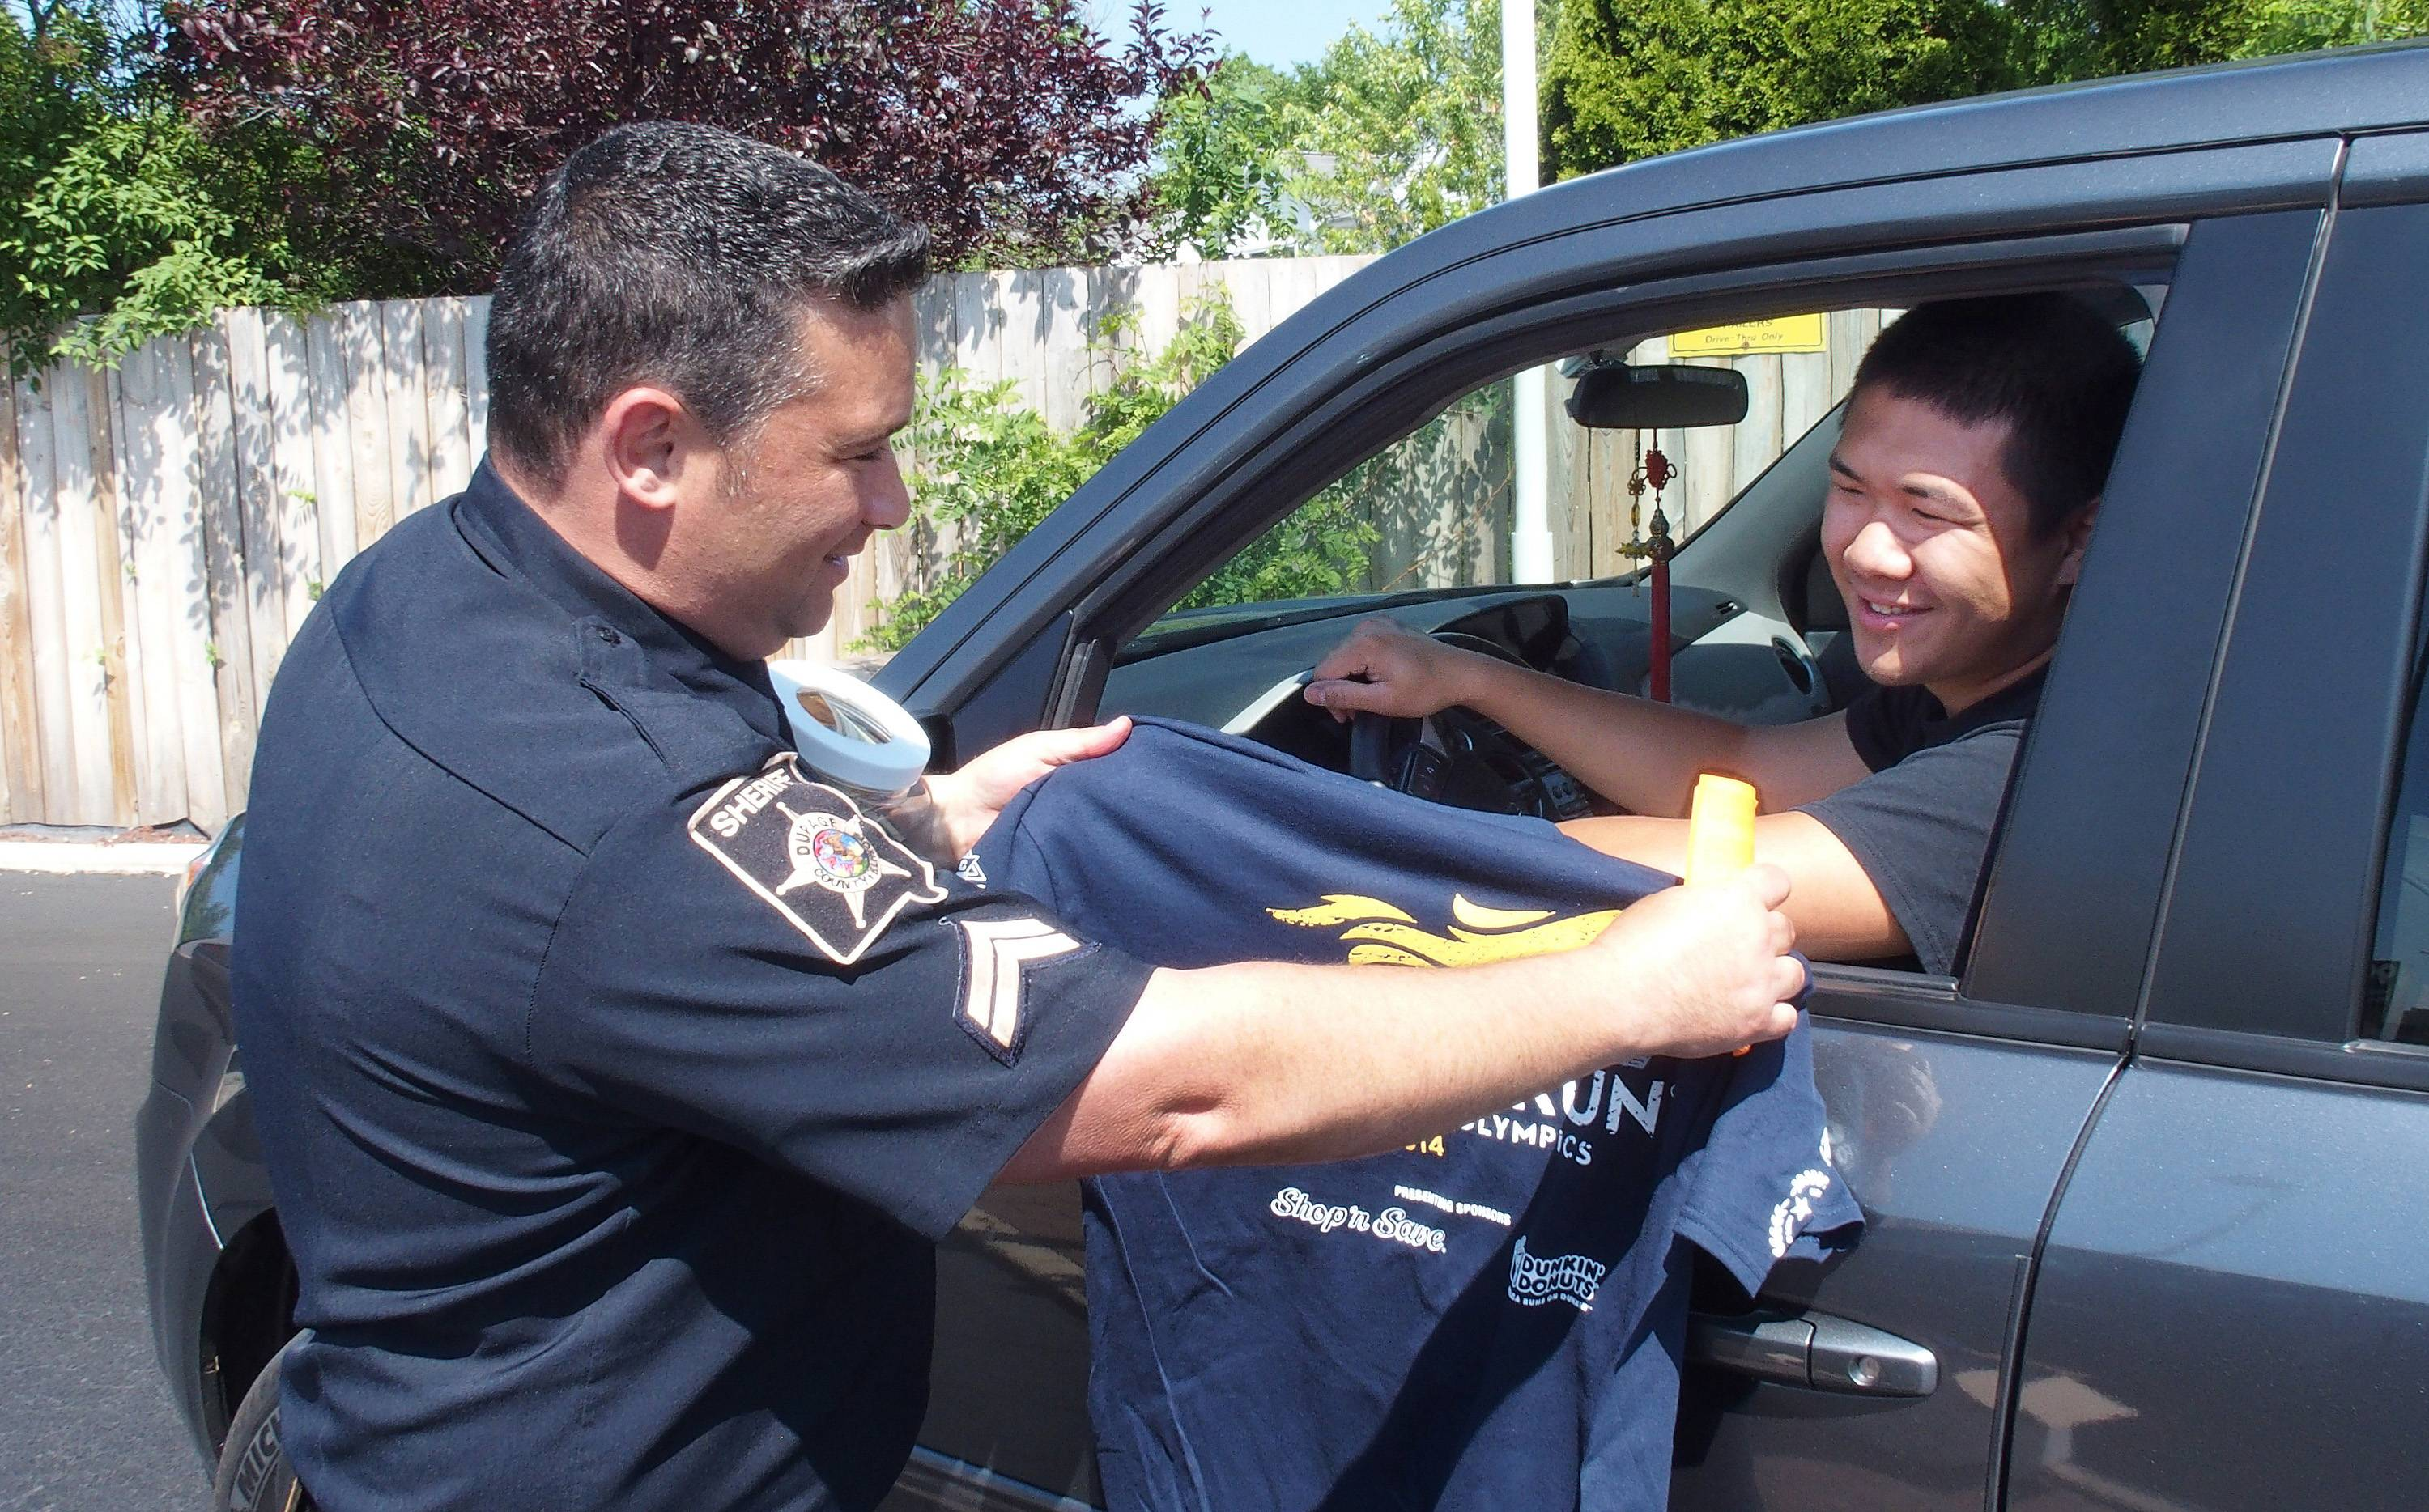 DuPage County sheriff's Cpl. Michael Urso hands a Law Enforcement Torch Run T-shirt to Tony Liu, a participant in the sheriff's Explorers program, who made a donation Friday to Special Olympics Illinois during the Cop on a Rooftop fundraiser at a Dunkin' Donuts in Naperville.